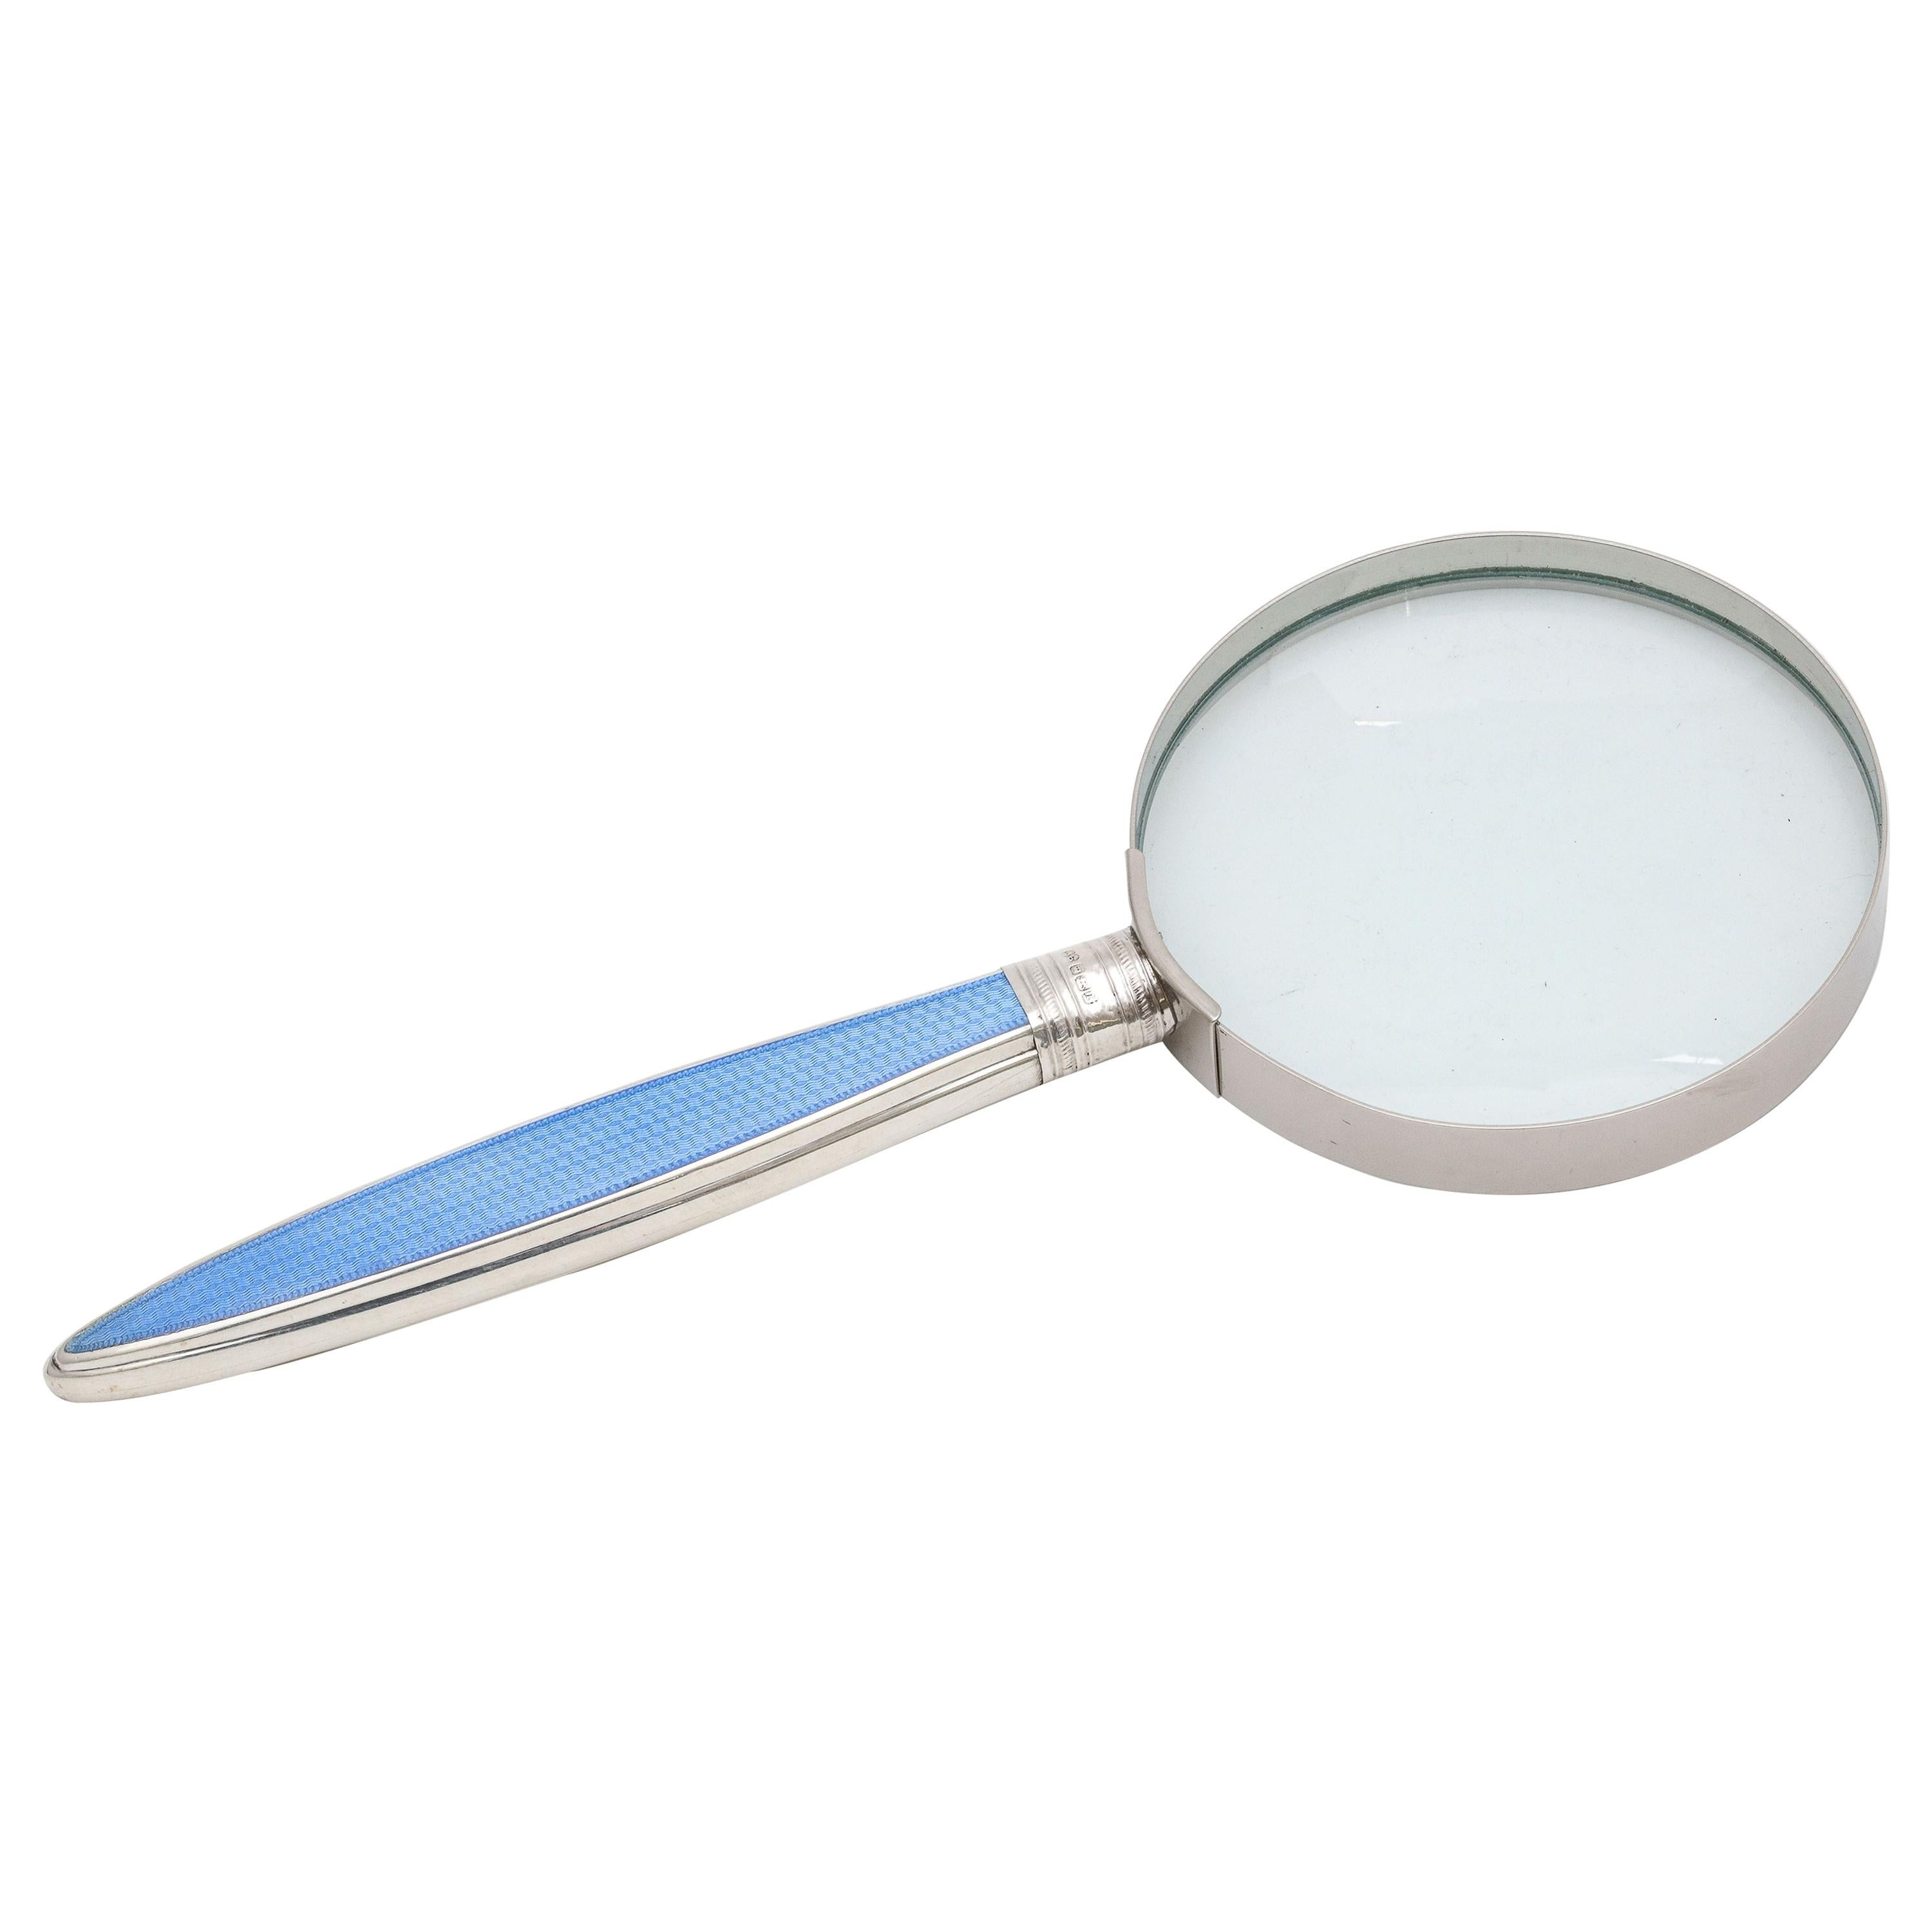 Large Edwardian Sterling Silver and Blue Enamel-Mounted Magnifying Glass